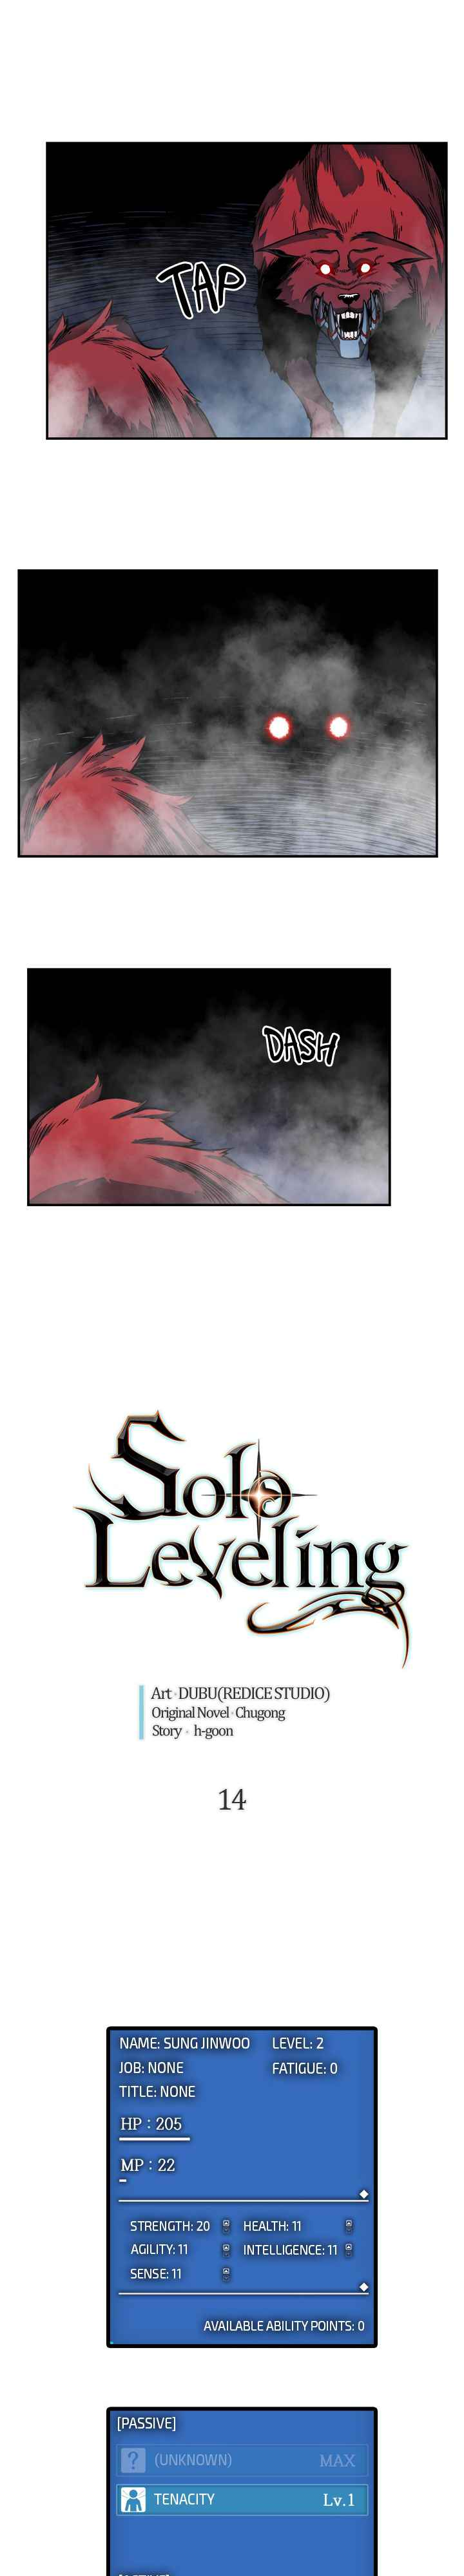 Solo Leveling Chapter 14 Page 1